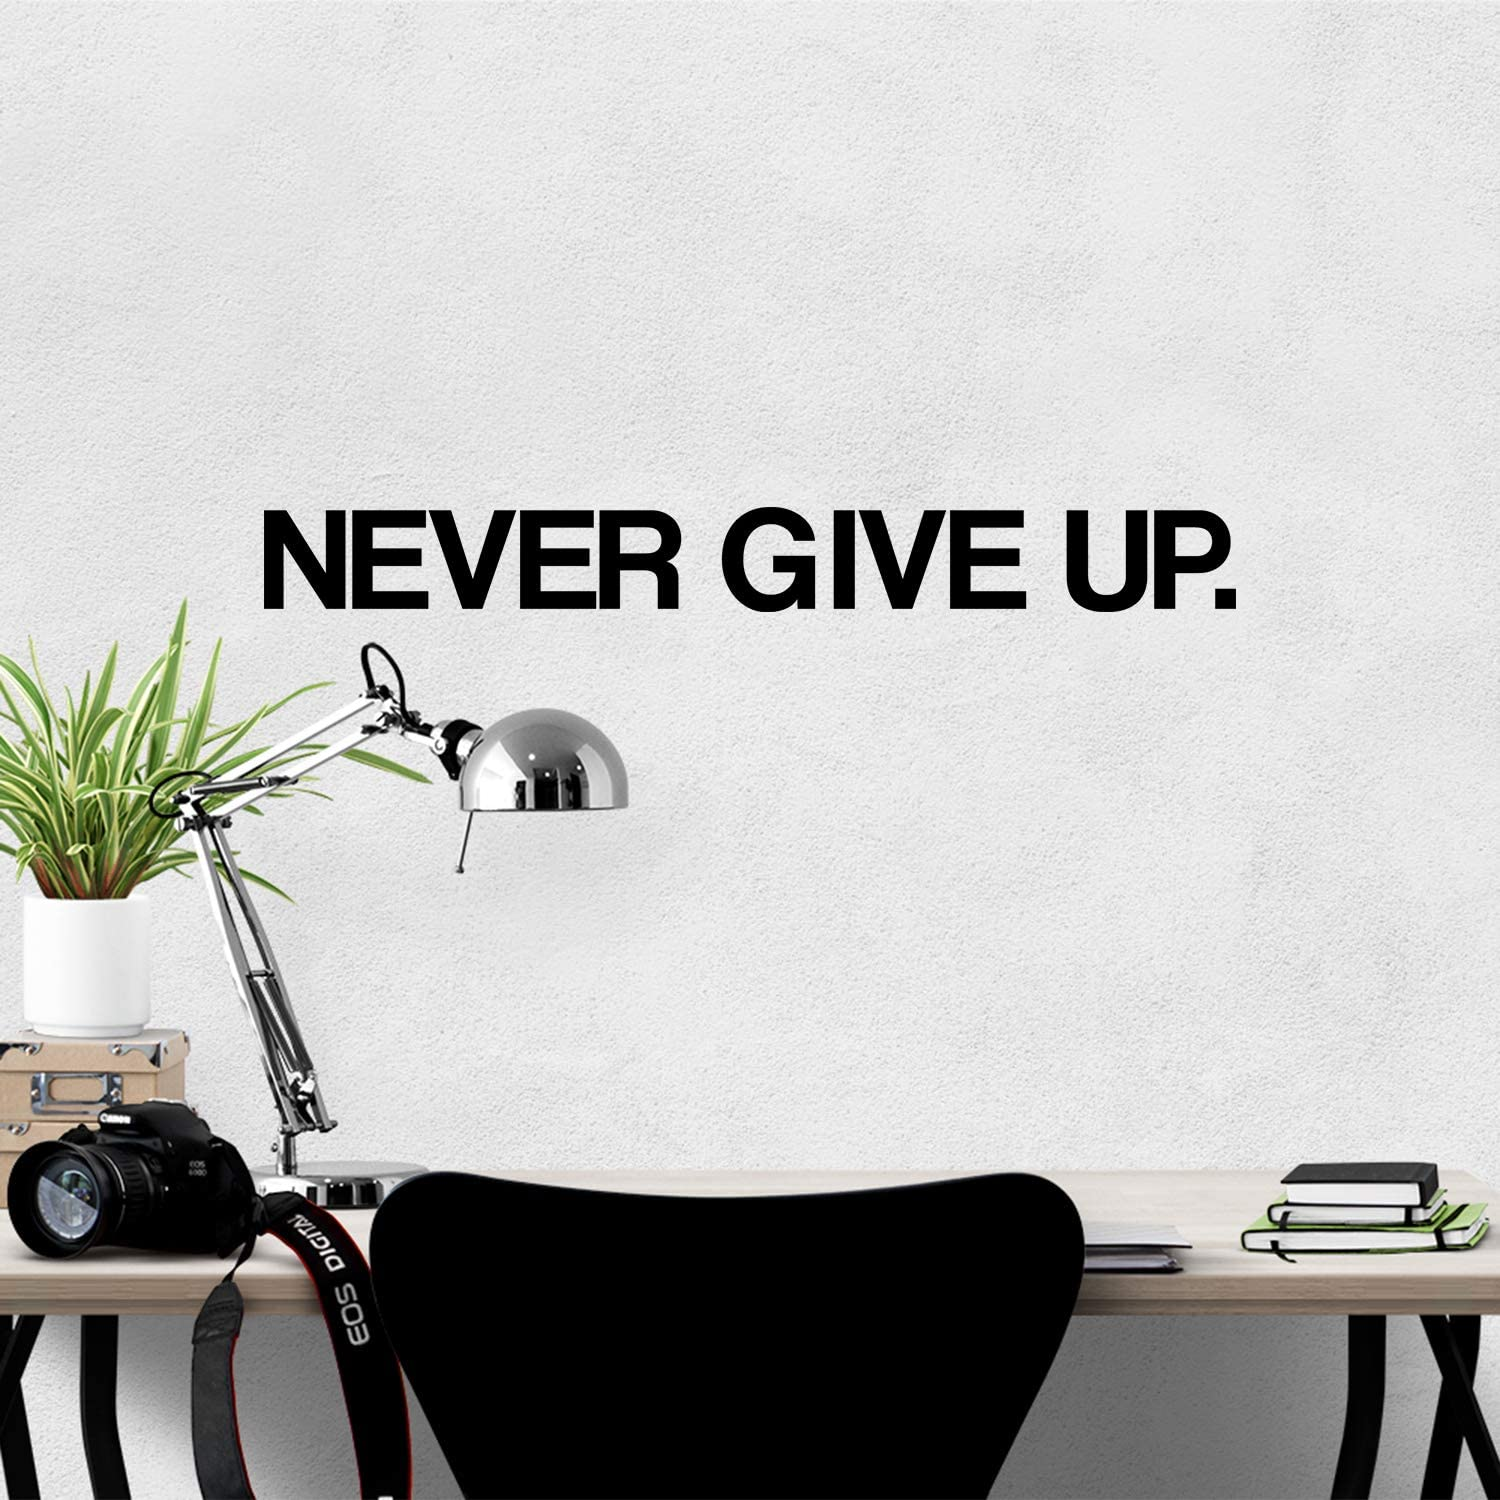 My Vinyl Story Never GIVE UP Wall Sticker Motivational Large Gym Wall Decal Quote for Home Gym Workout Motivational Wall Art Decor Vinyl Removable Sticker